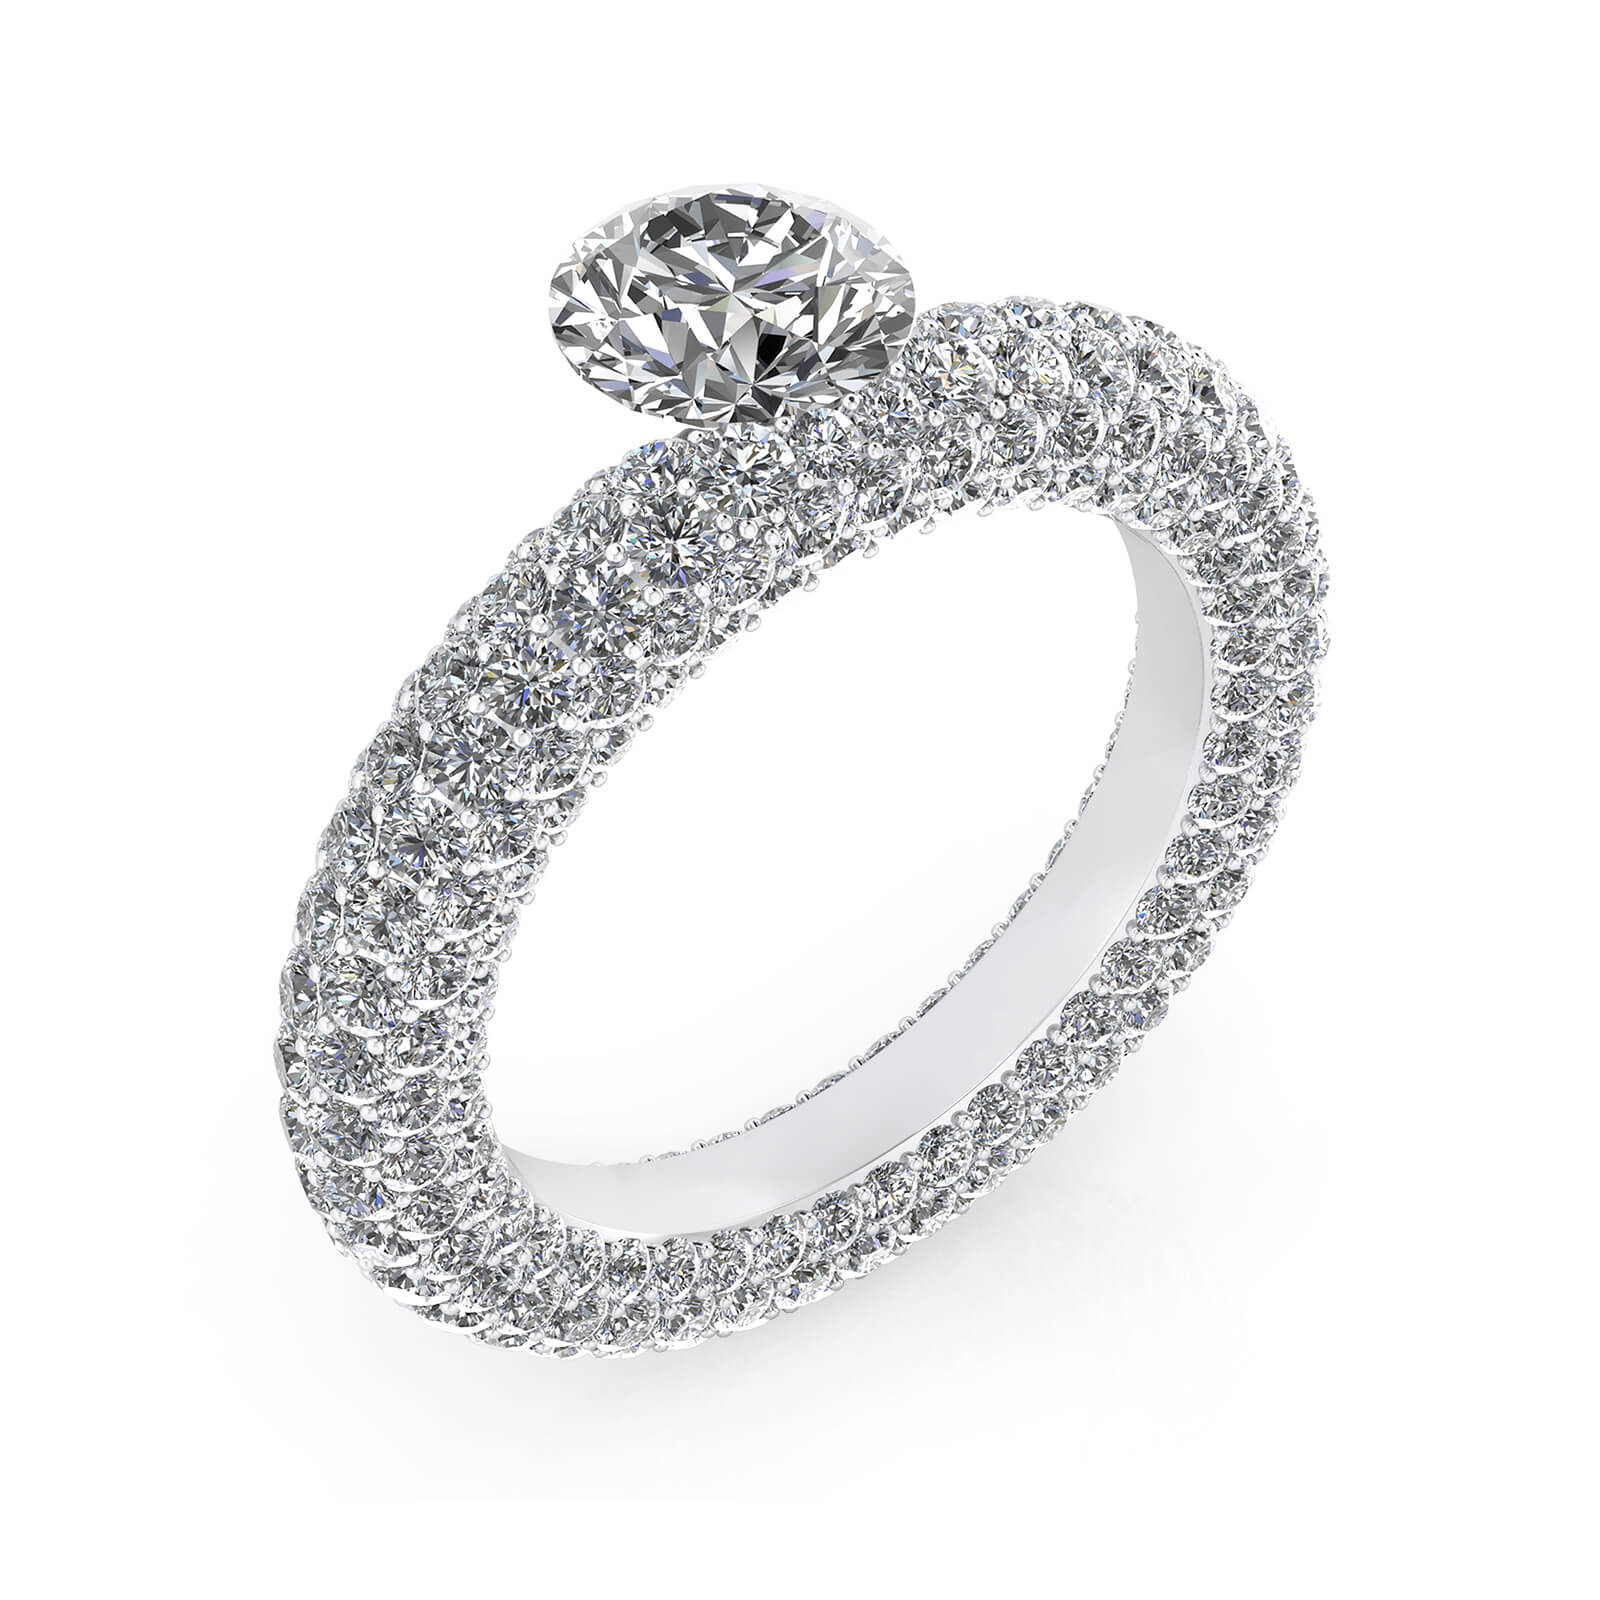 Engagement Rings white gold with 143 diamonds and a central diamond